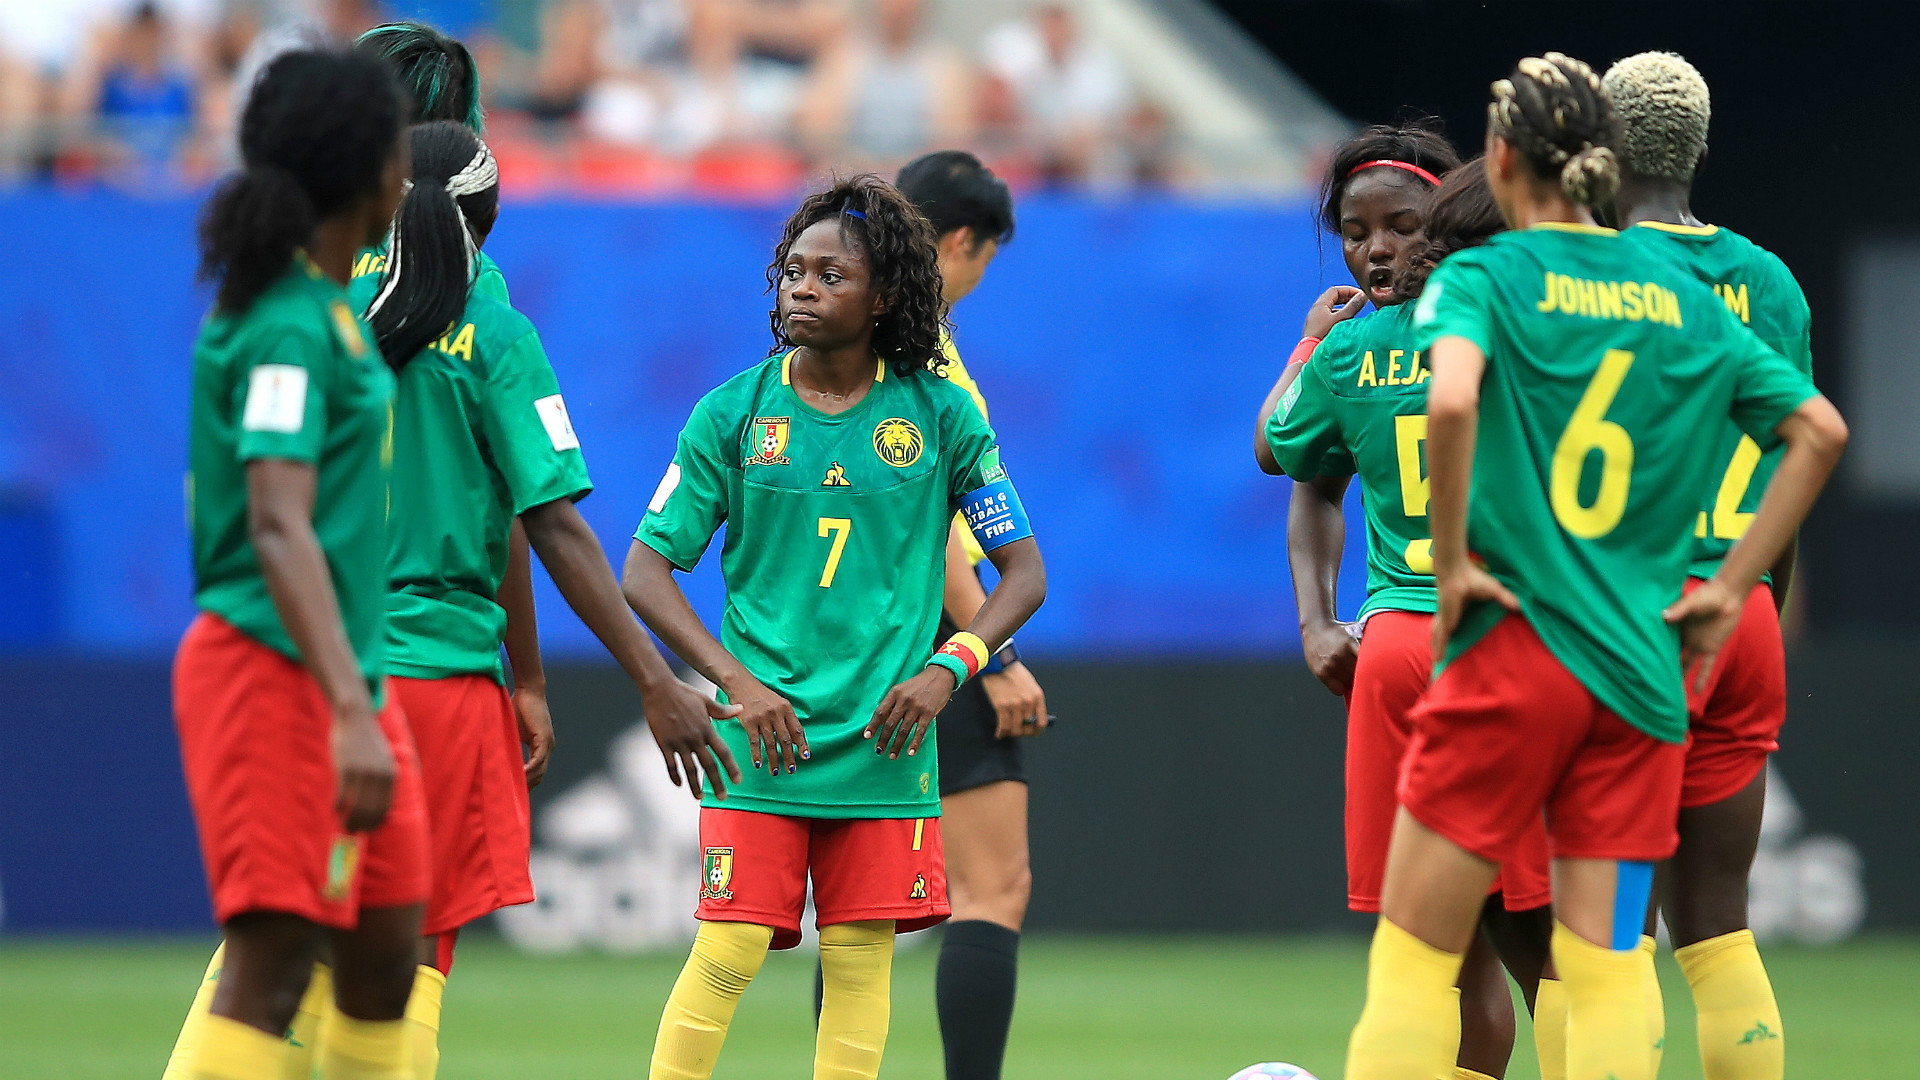 Three years in a lifetime is long - Nchout berates 2020 Africa Women's Cup of Nations cancellation